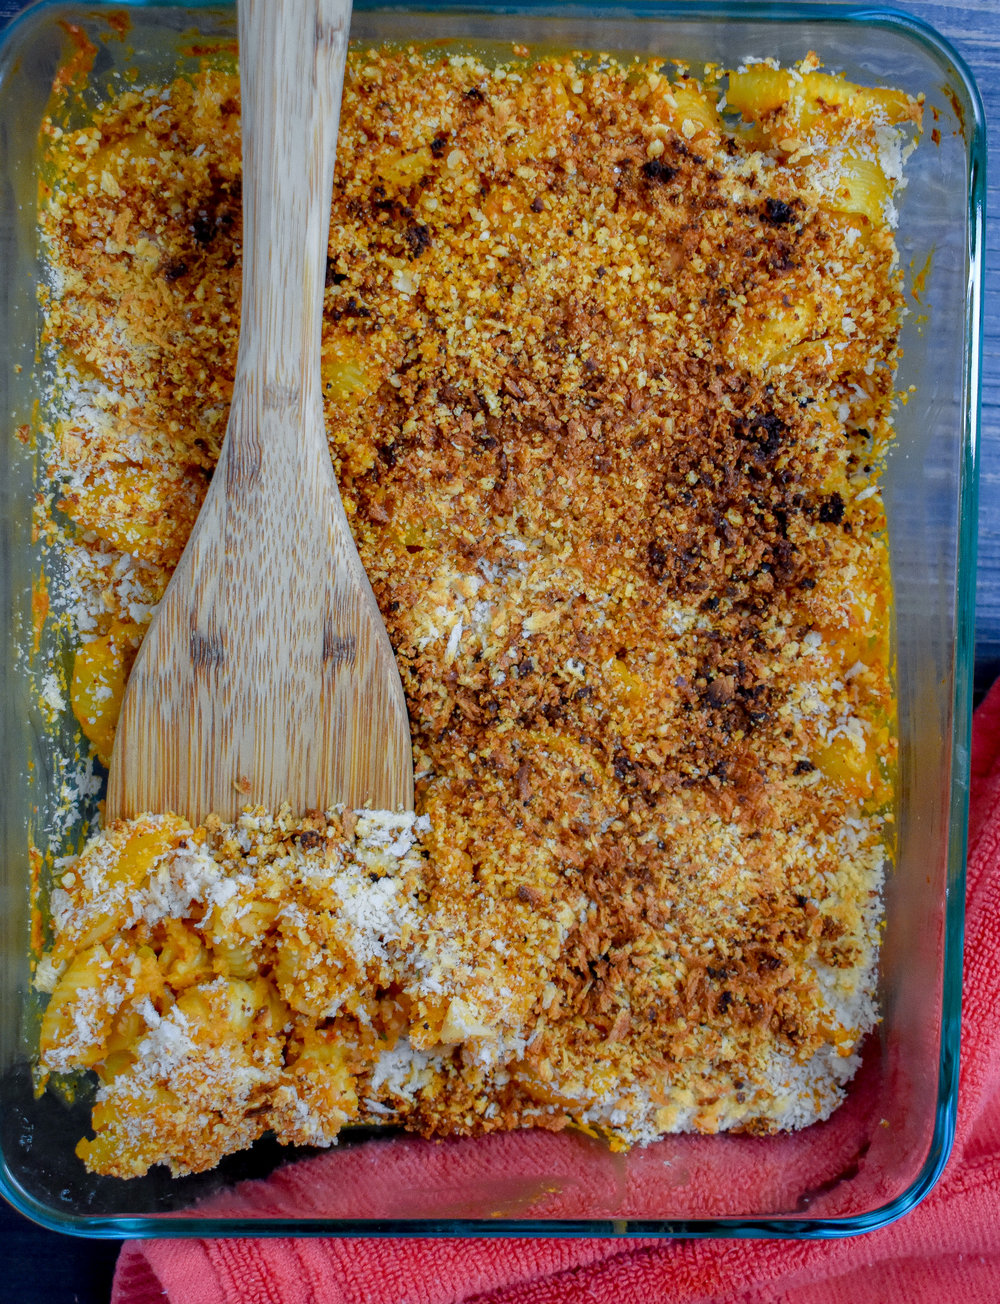 6. Add cheese blend + panko breadcrumbs to the top of the mac + cheese casserole and place into oven. Bake at 400F for 16-20 minutes then broil at 500F for 4-5 minutes until breadcrumbs/cheese blend start to brown.